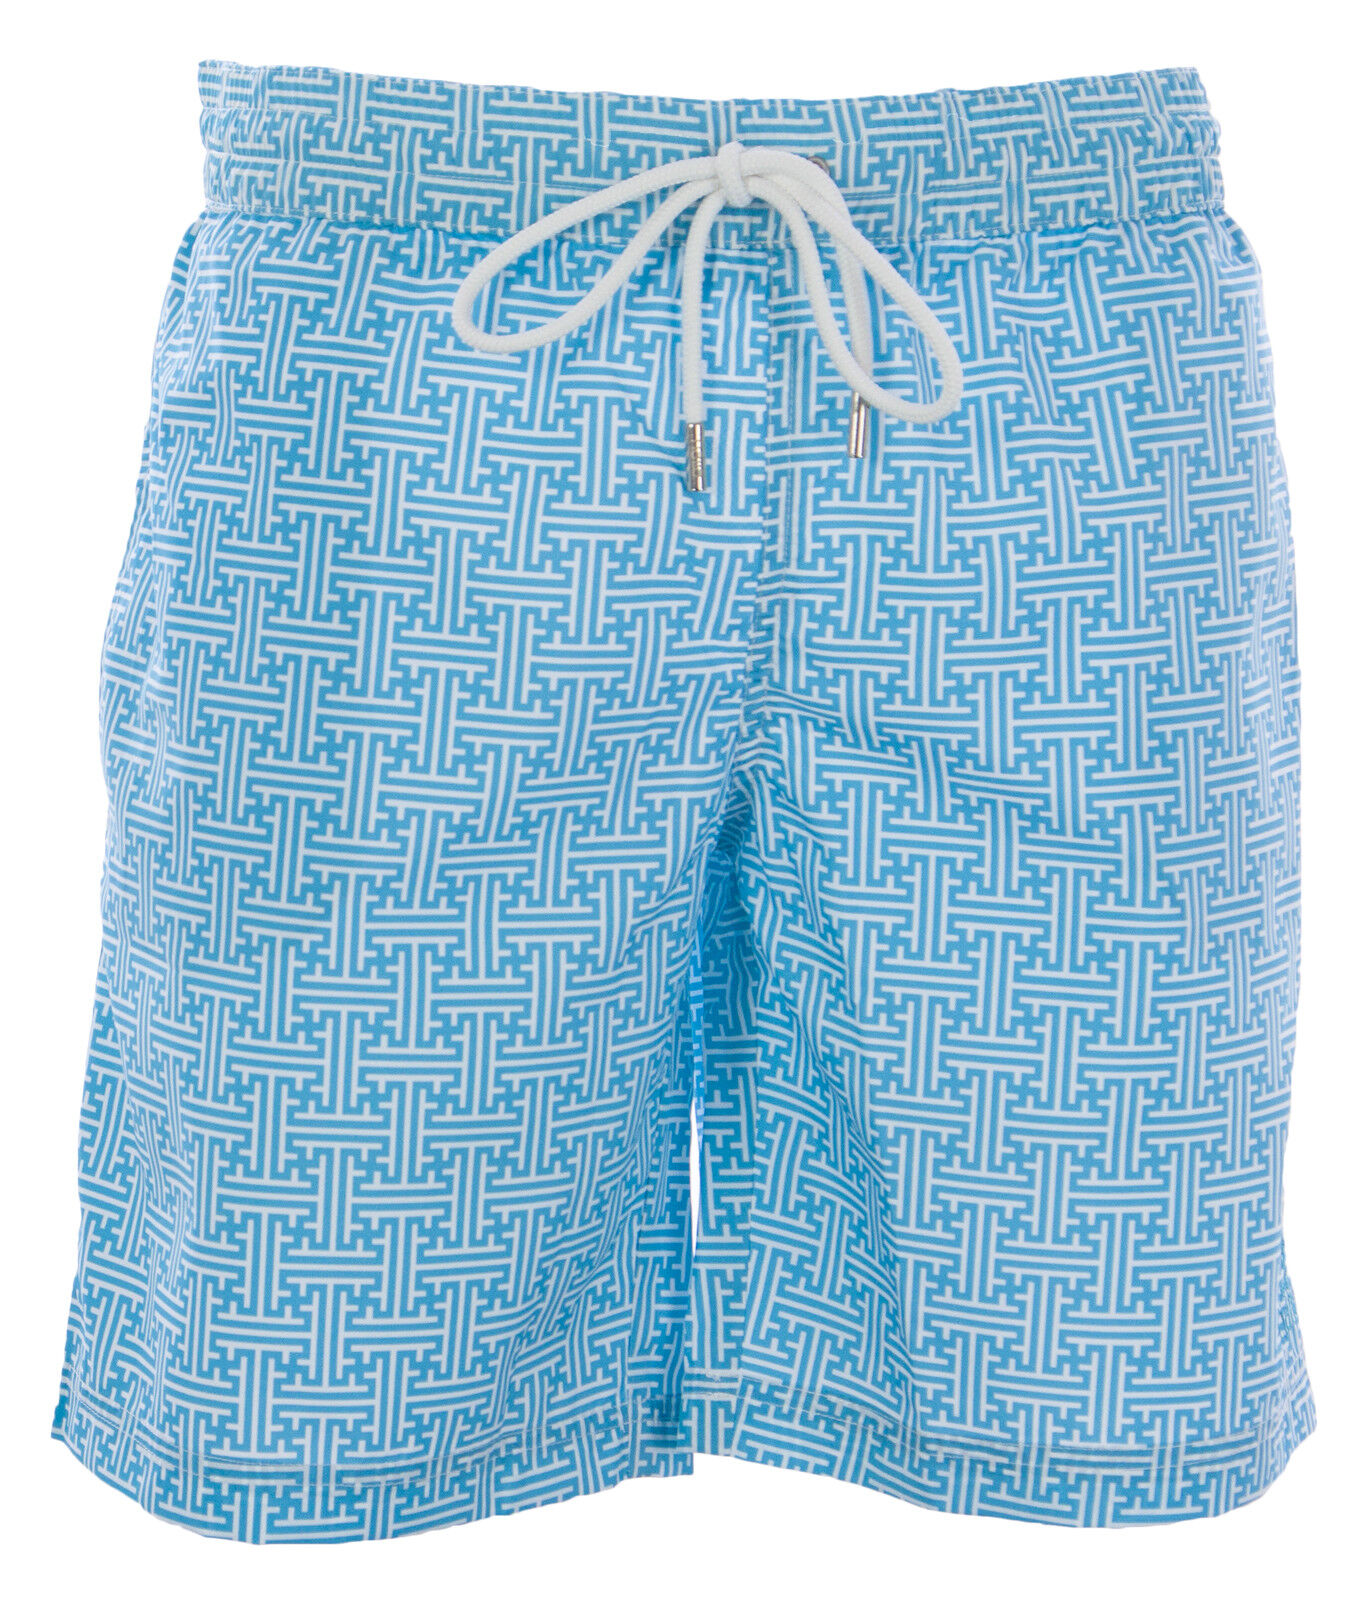 NAILA Men's Turquoise Line Printed Swim Trunks EVIANTUQ NEW